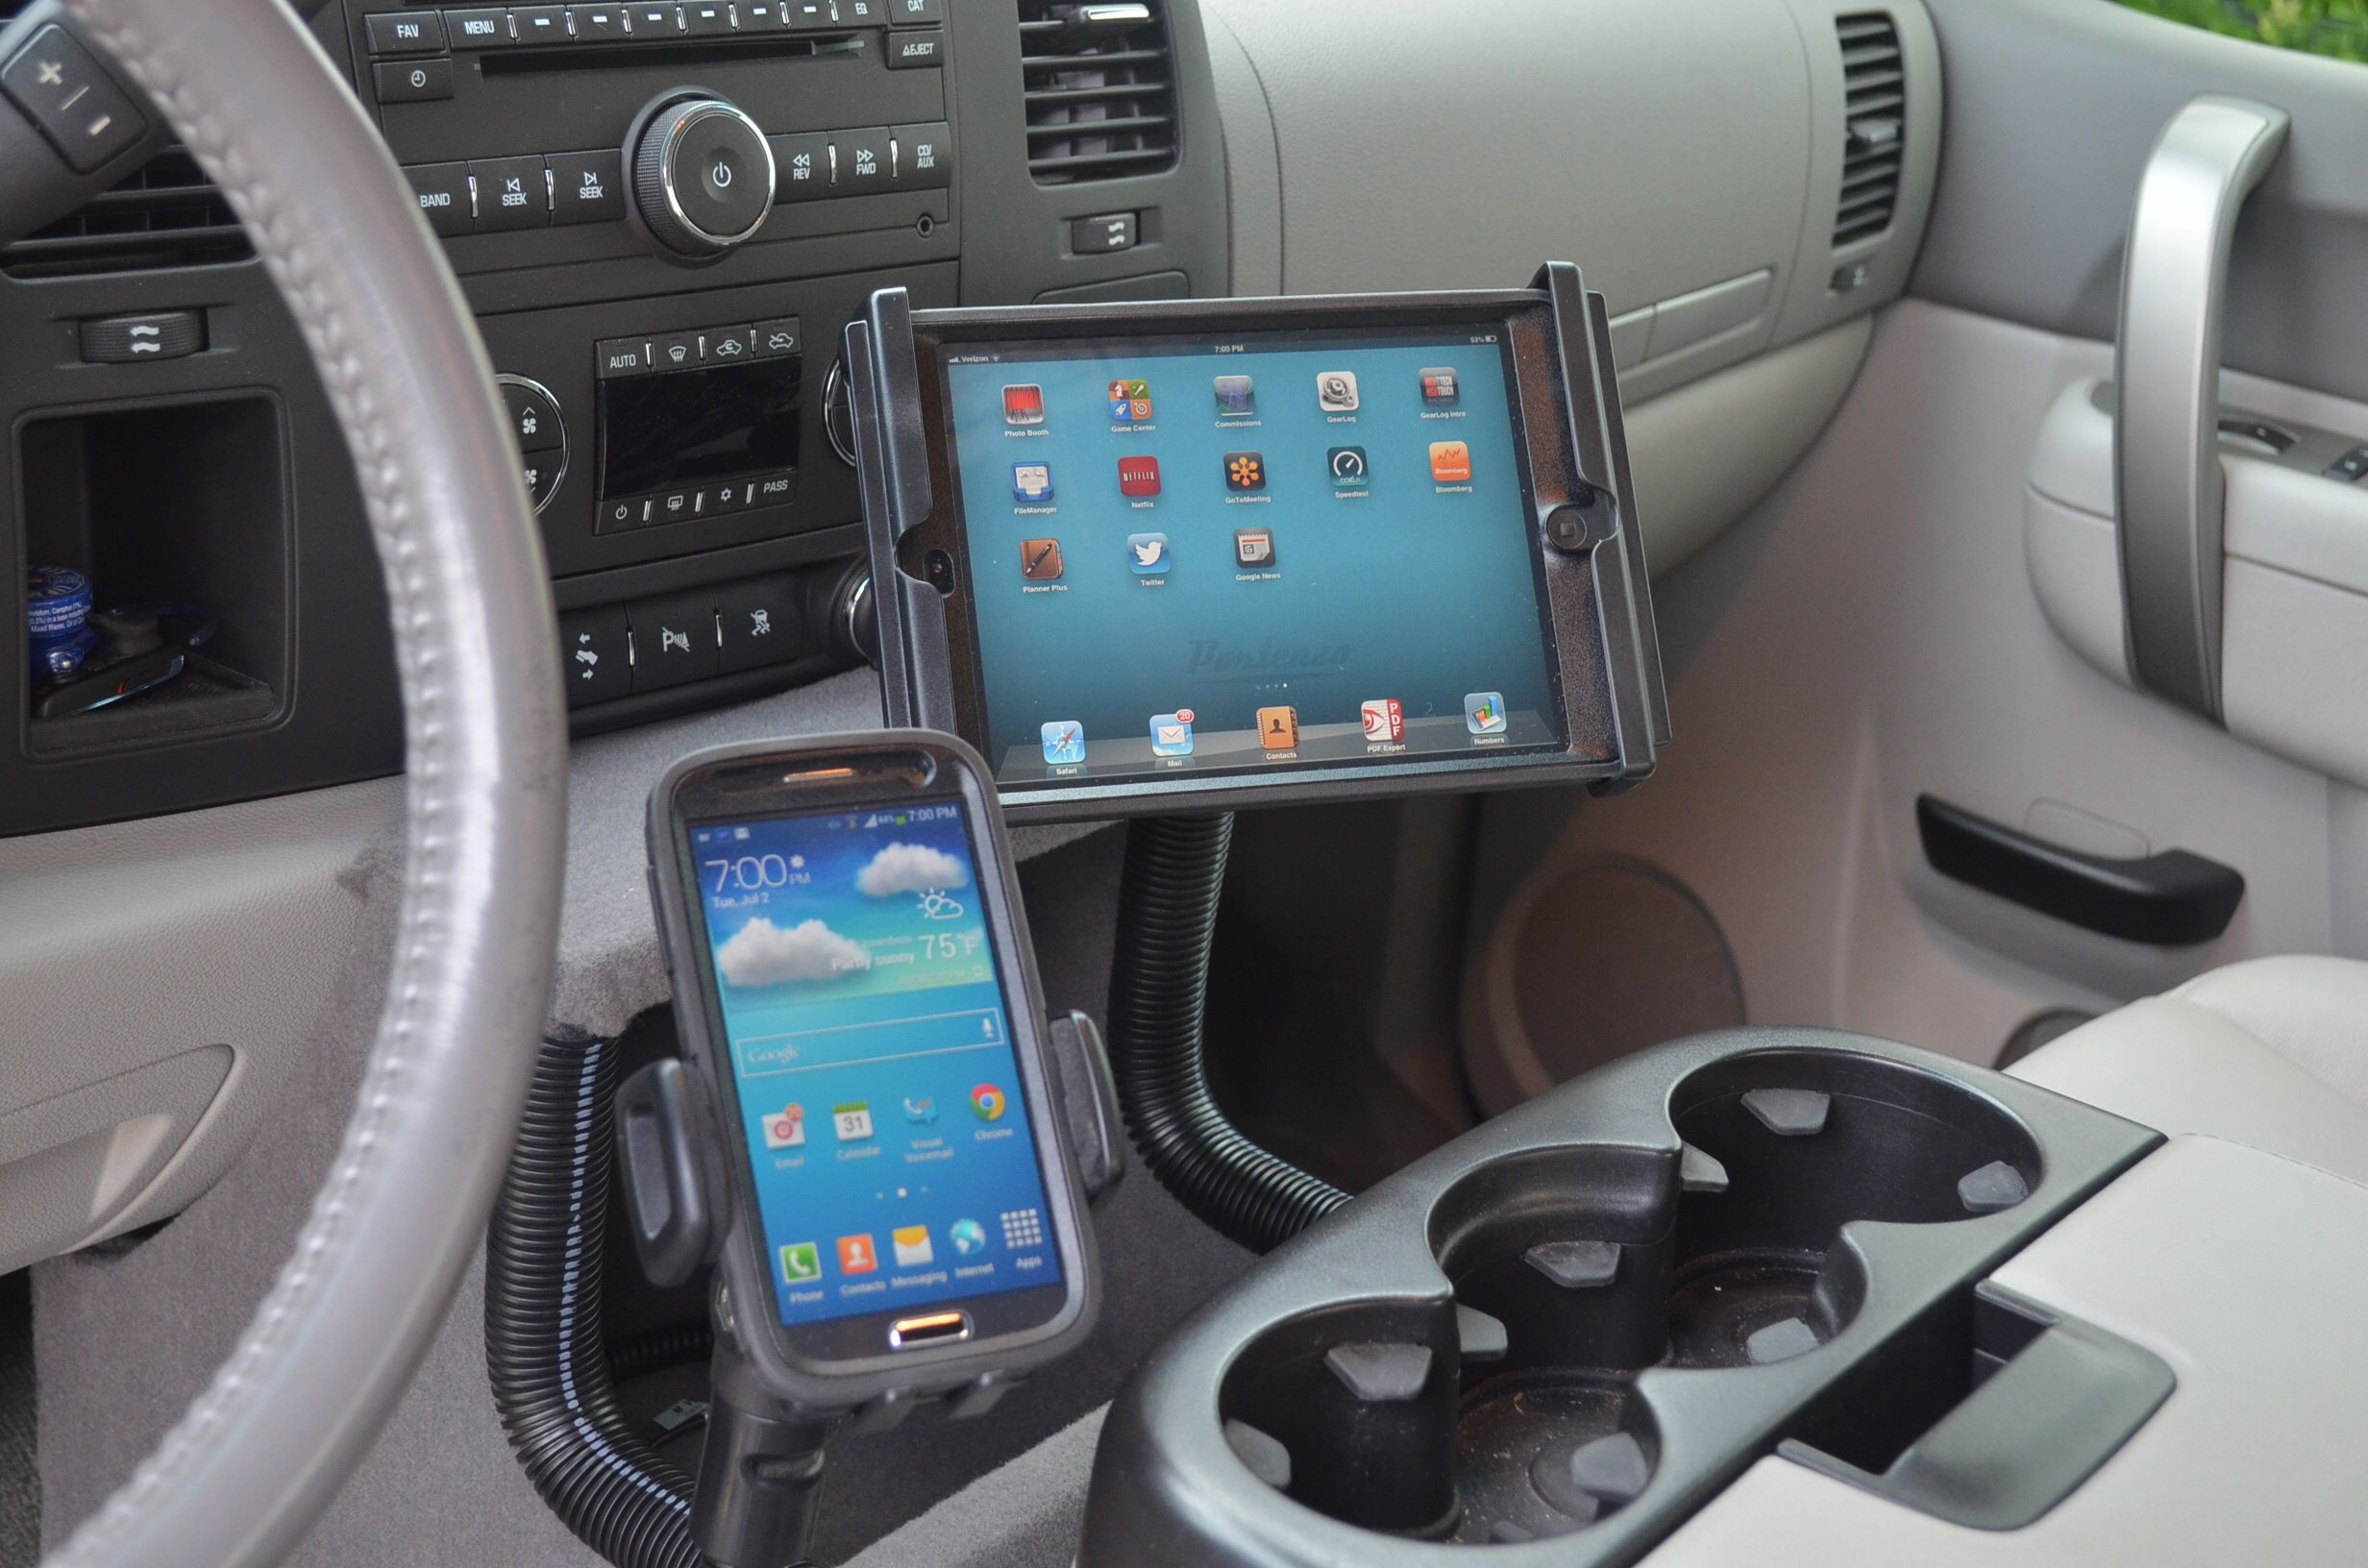 Truck Gps And Mount Photos And Articles